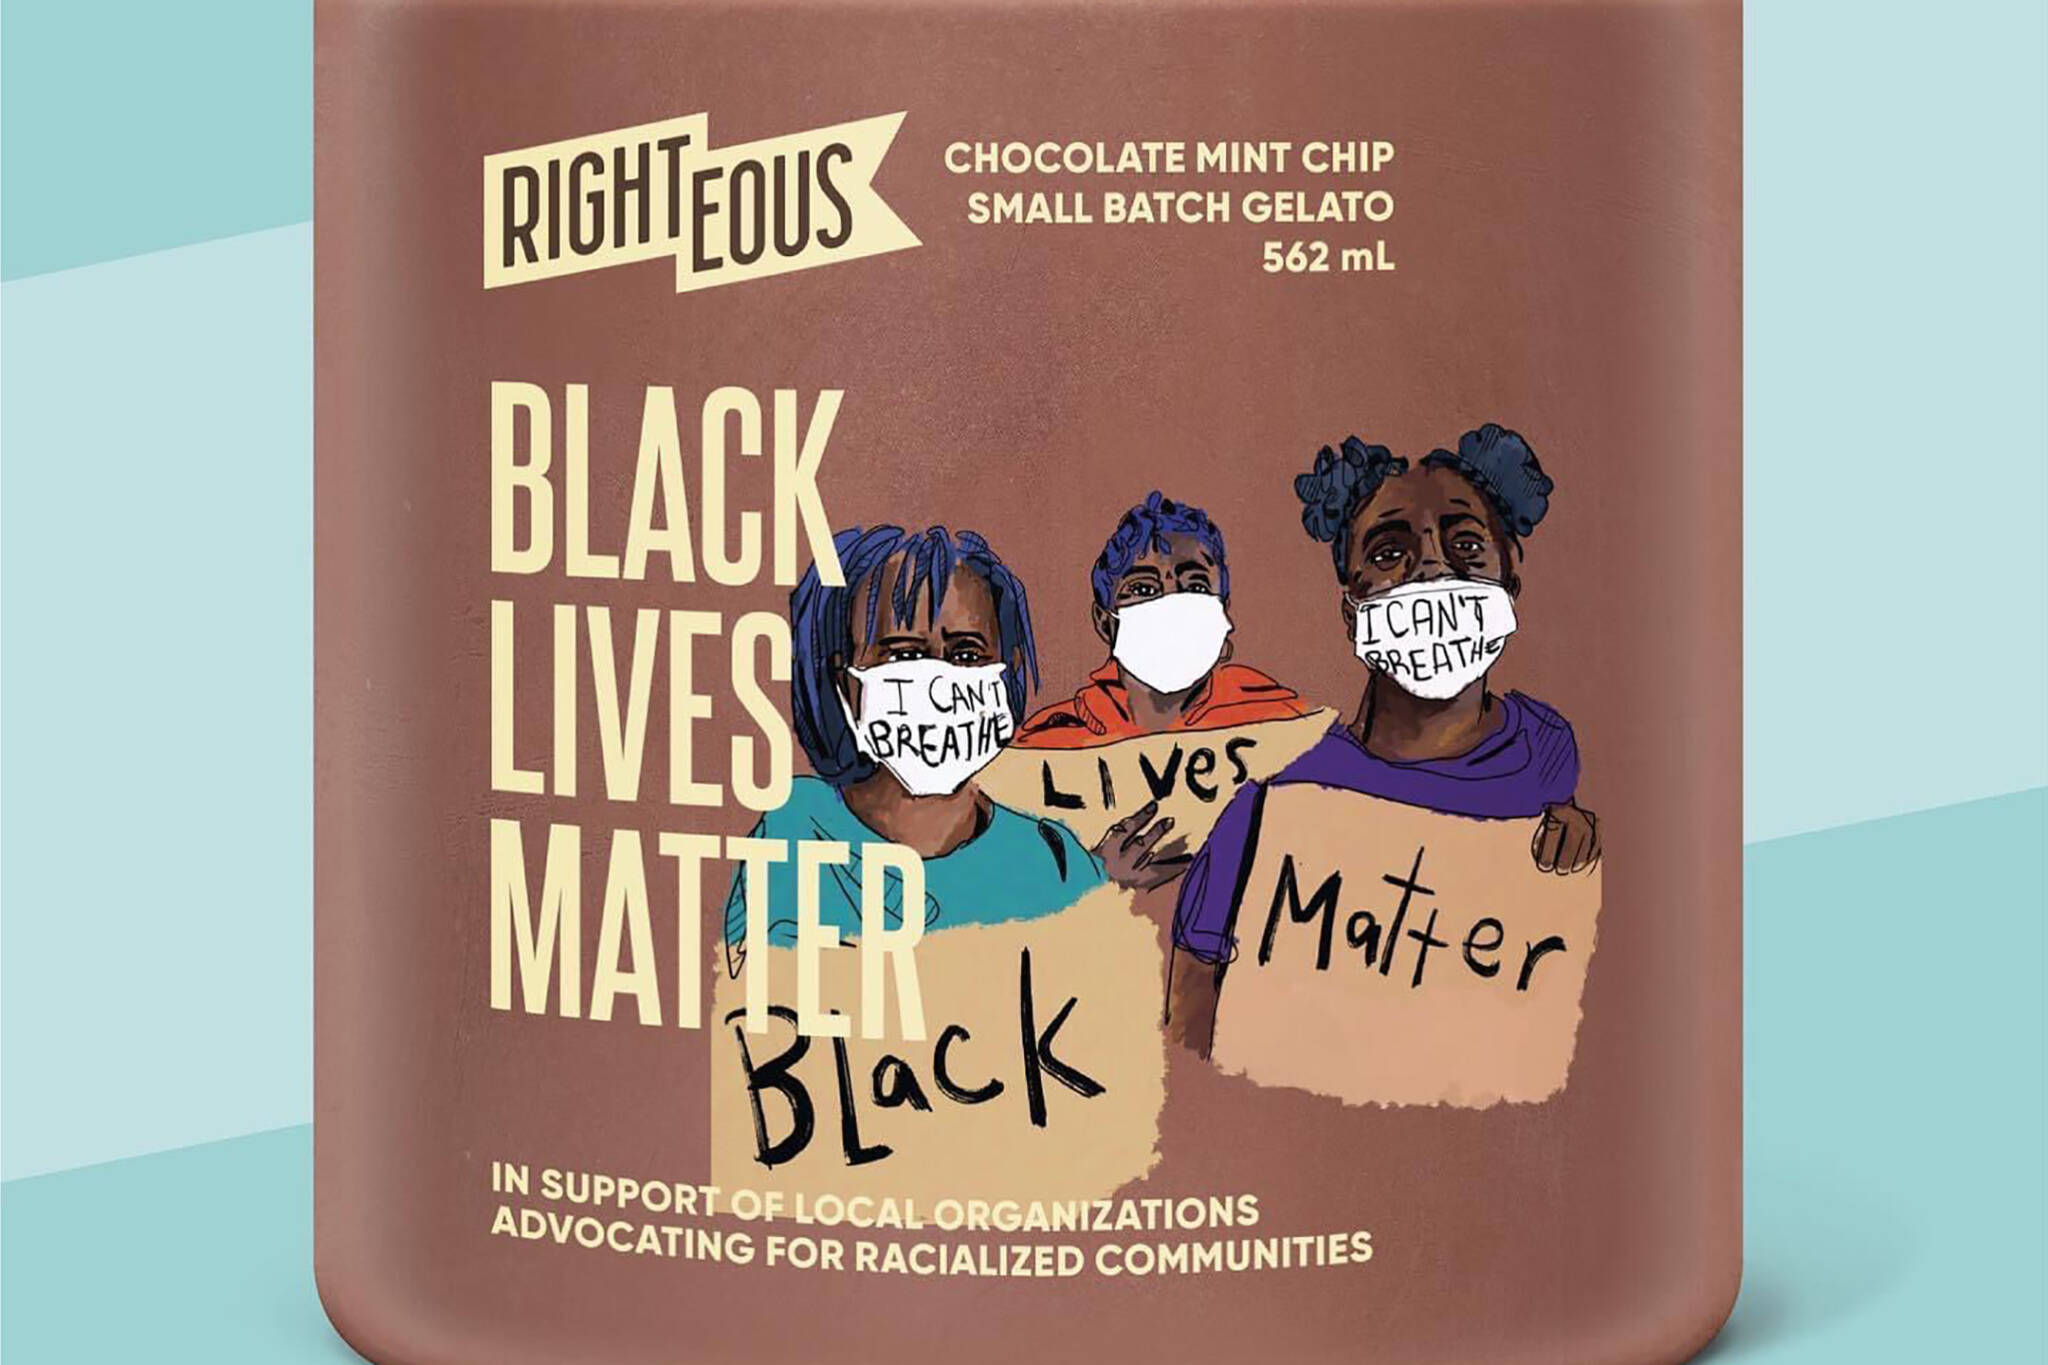 righteous gelato black lives matter